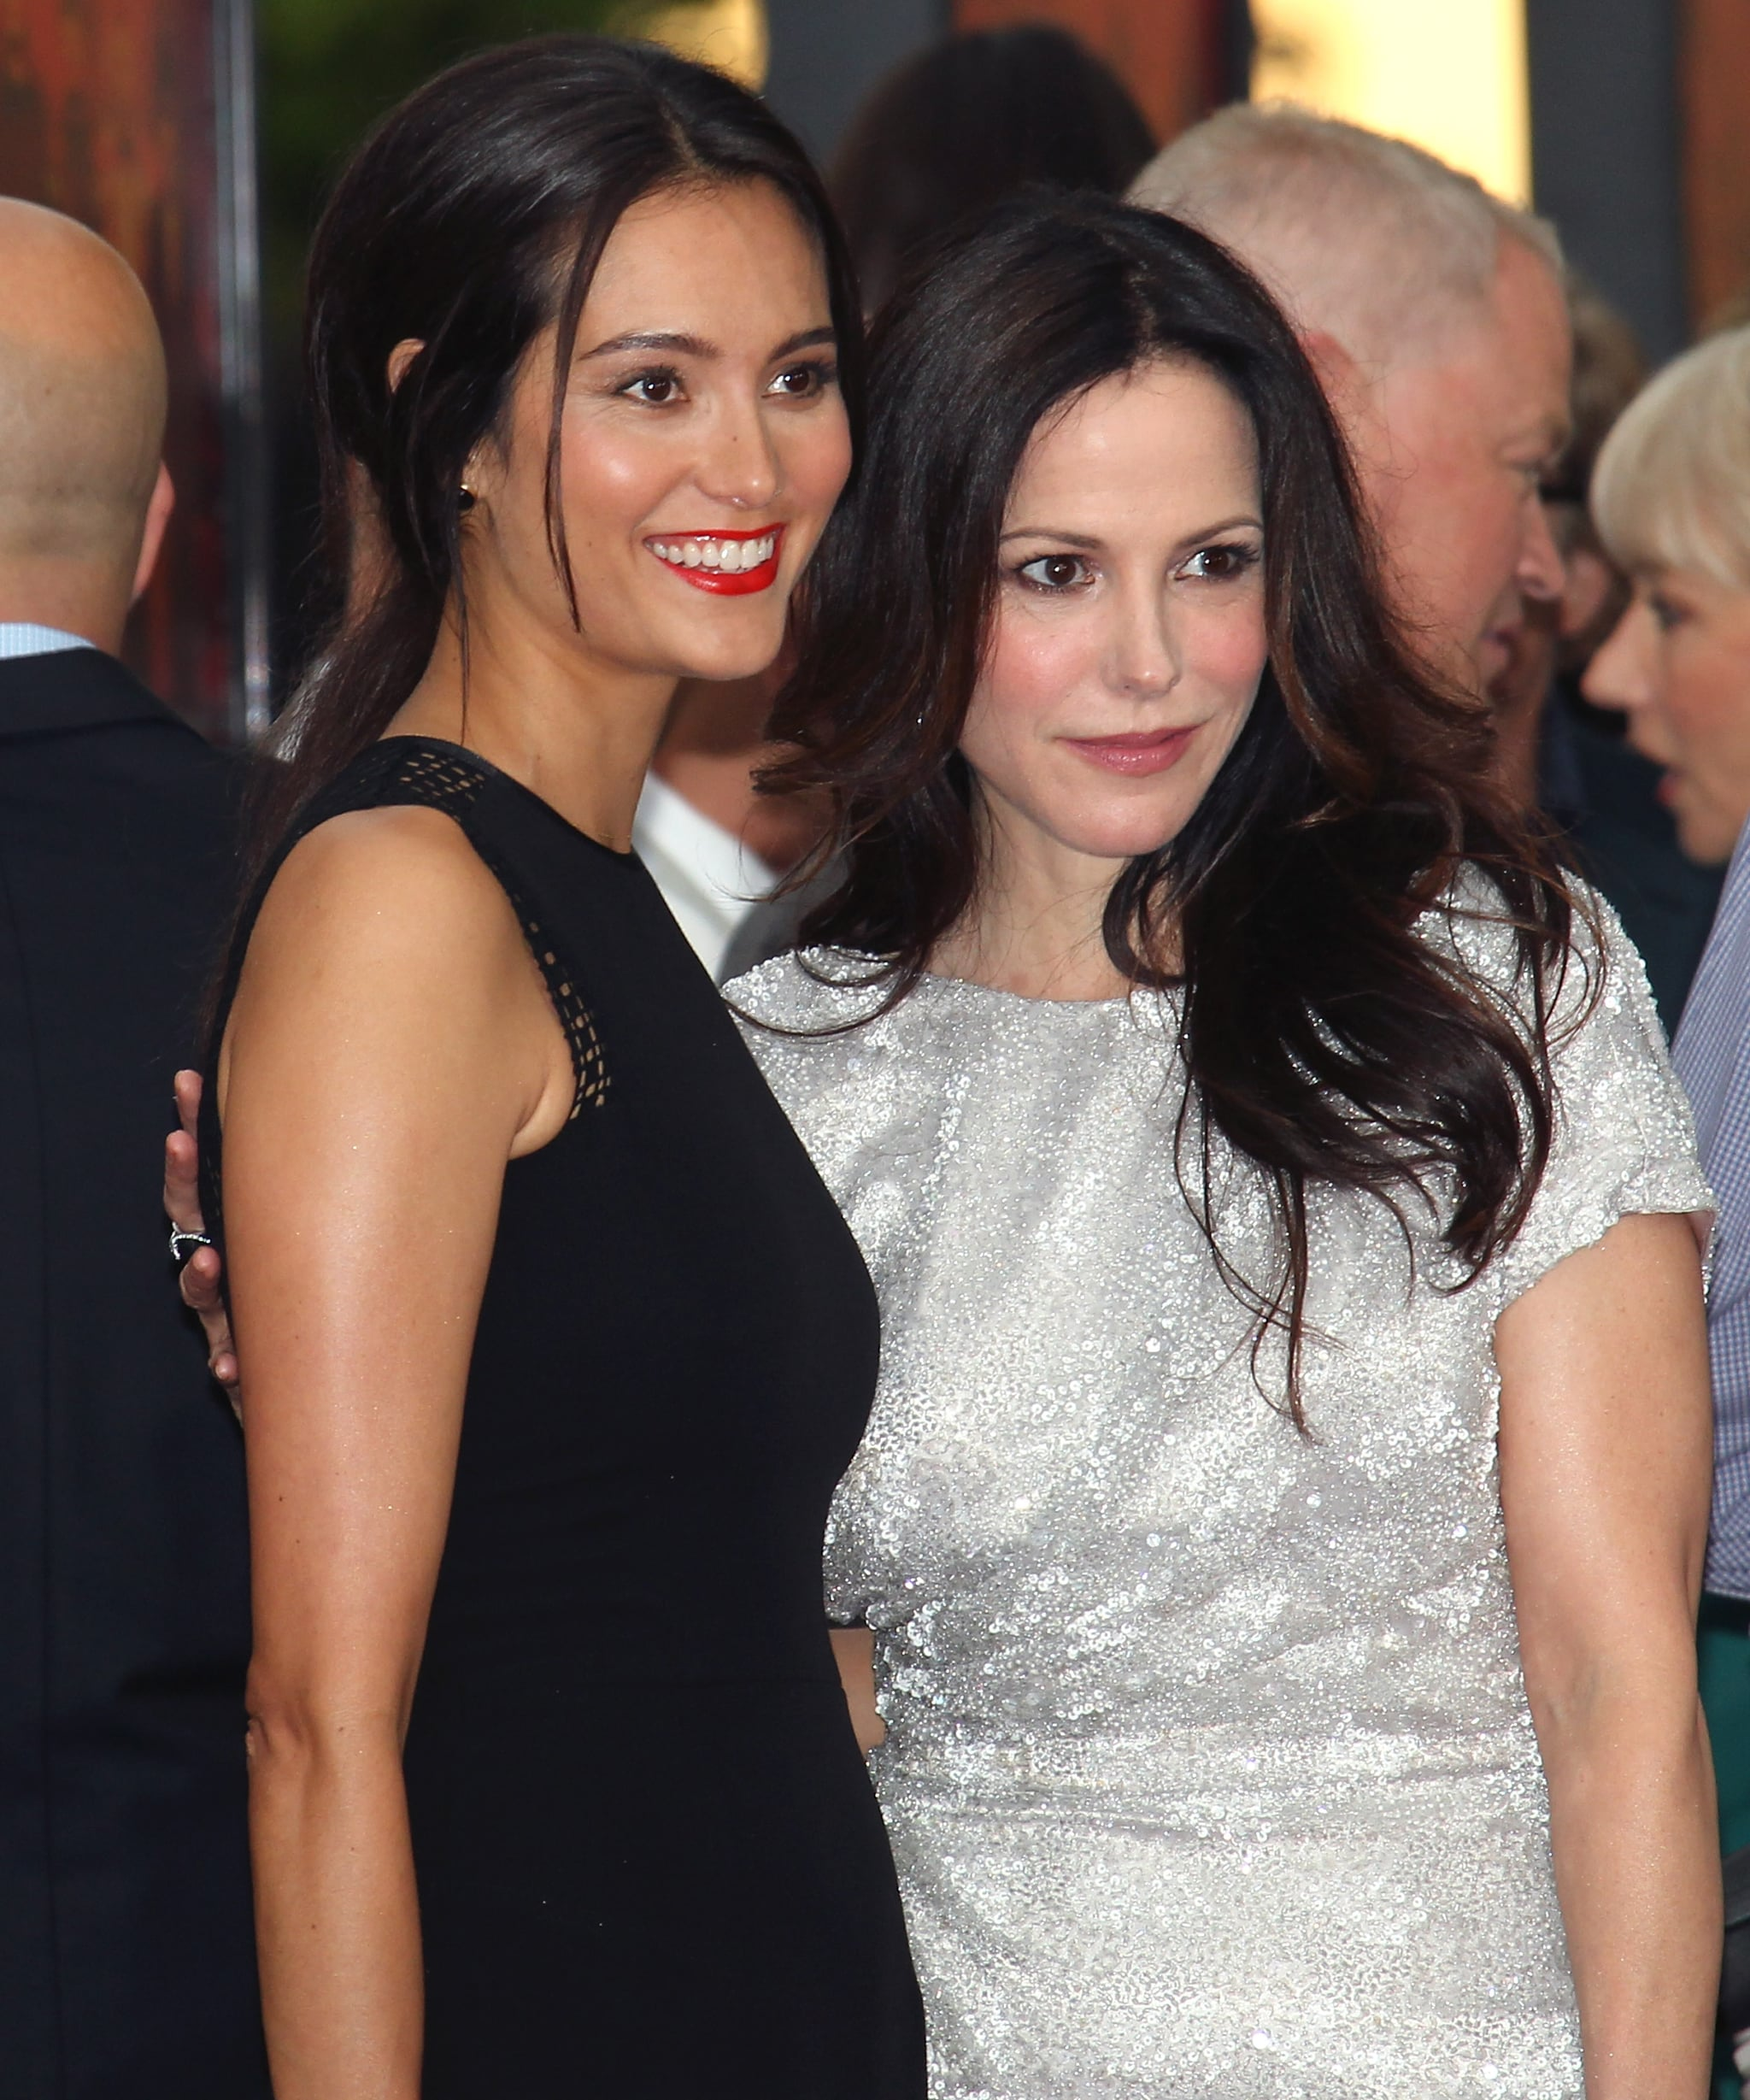 Catherine Zeta-Jones Goes Back to Black at the Red 2 Premiere